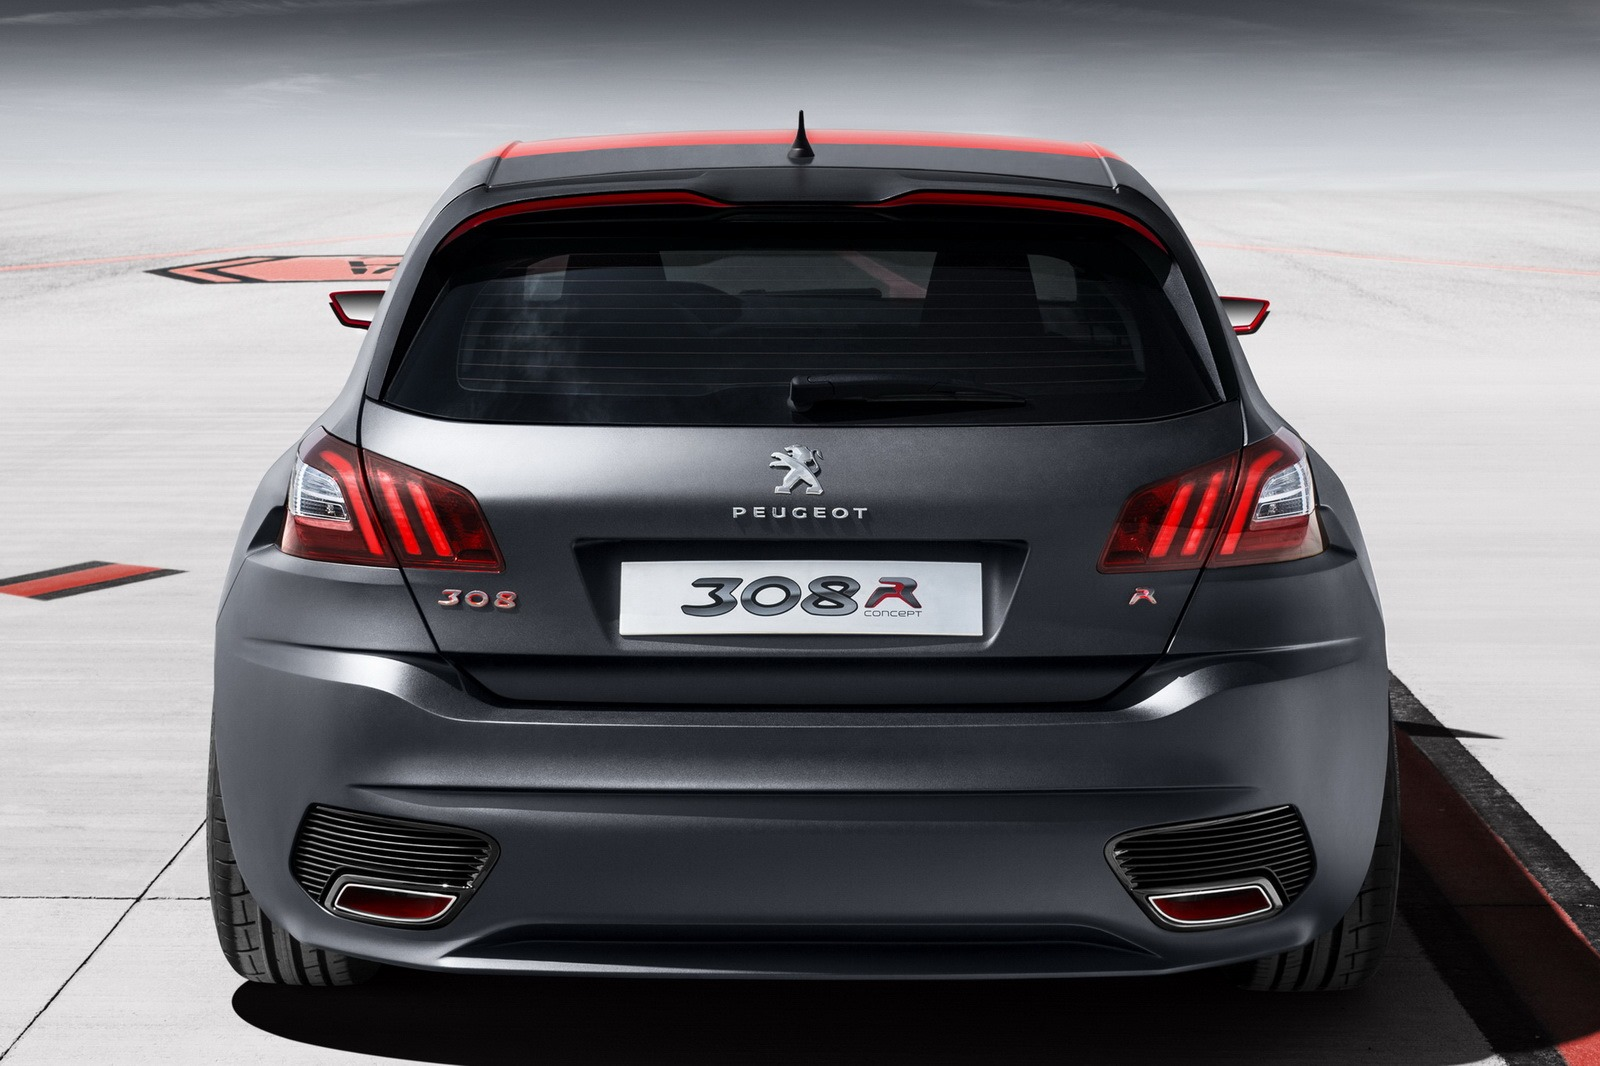 Peugeot 308 R Concept Revealed: 1.6 Turbo With 270 HP